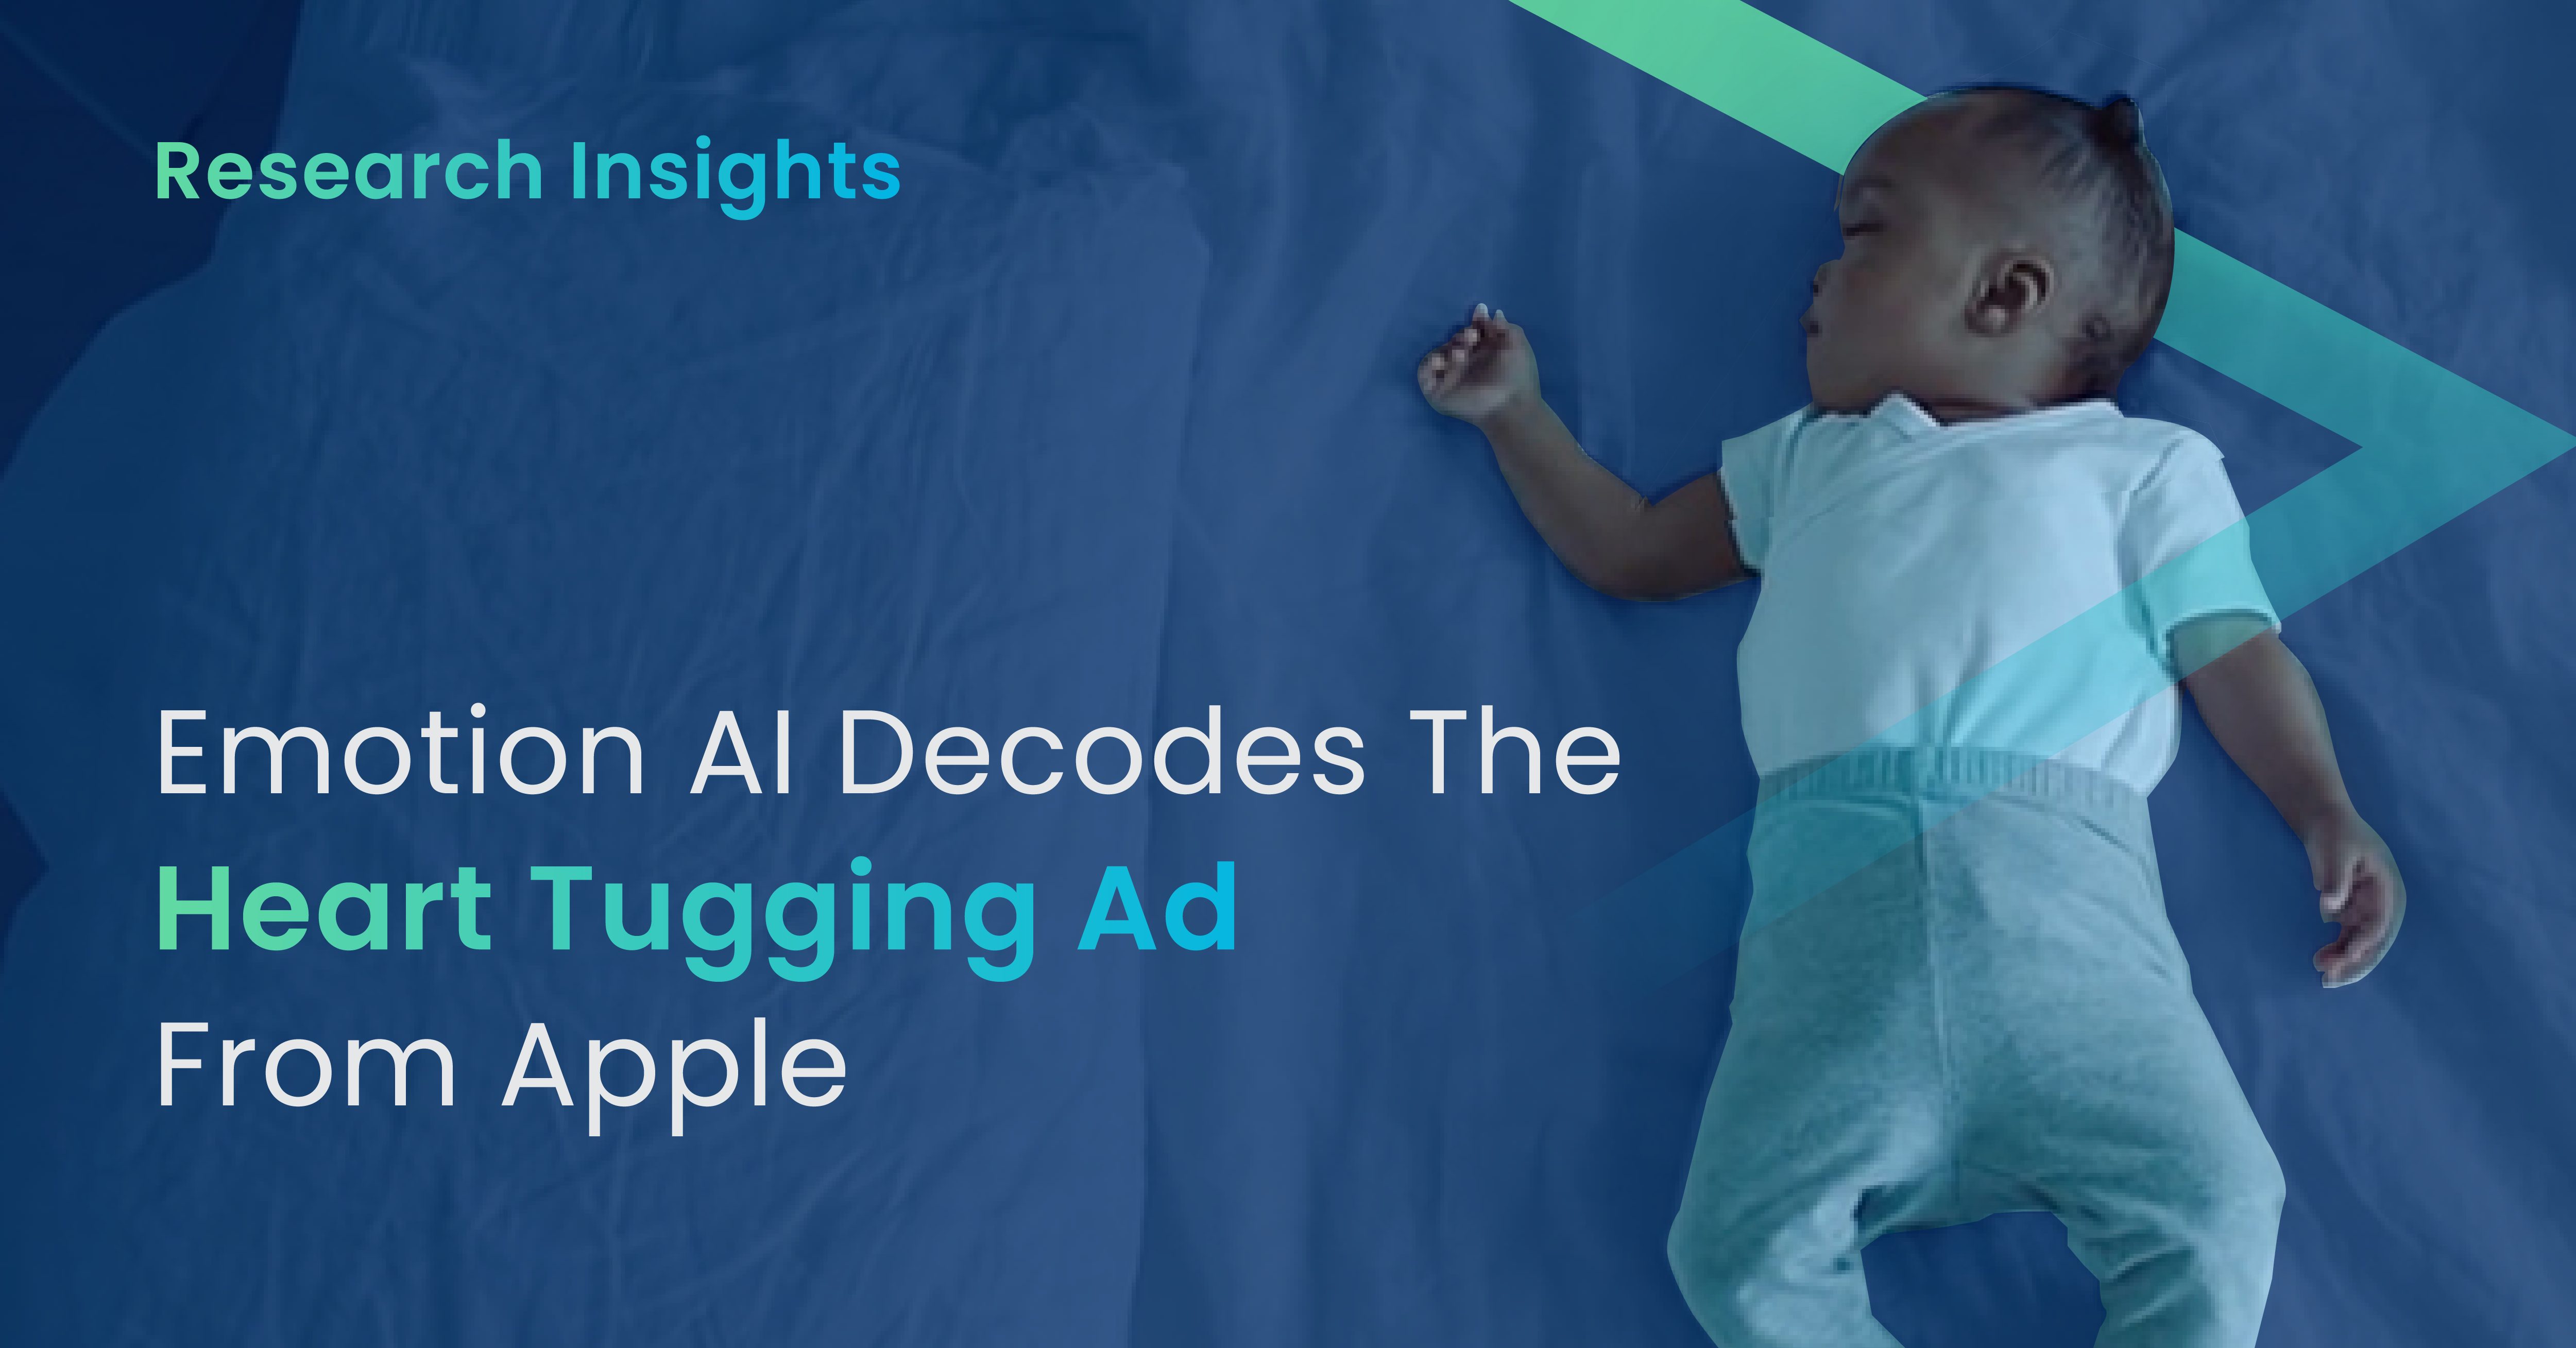 Decoding the Heart Tugging Ad from Apple using Ad Insights